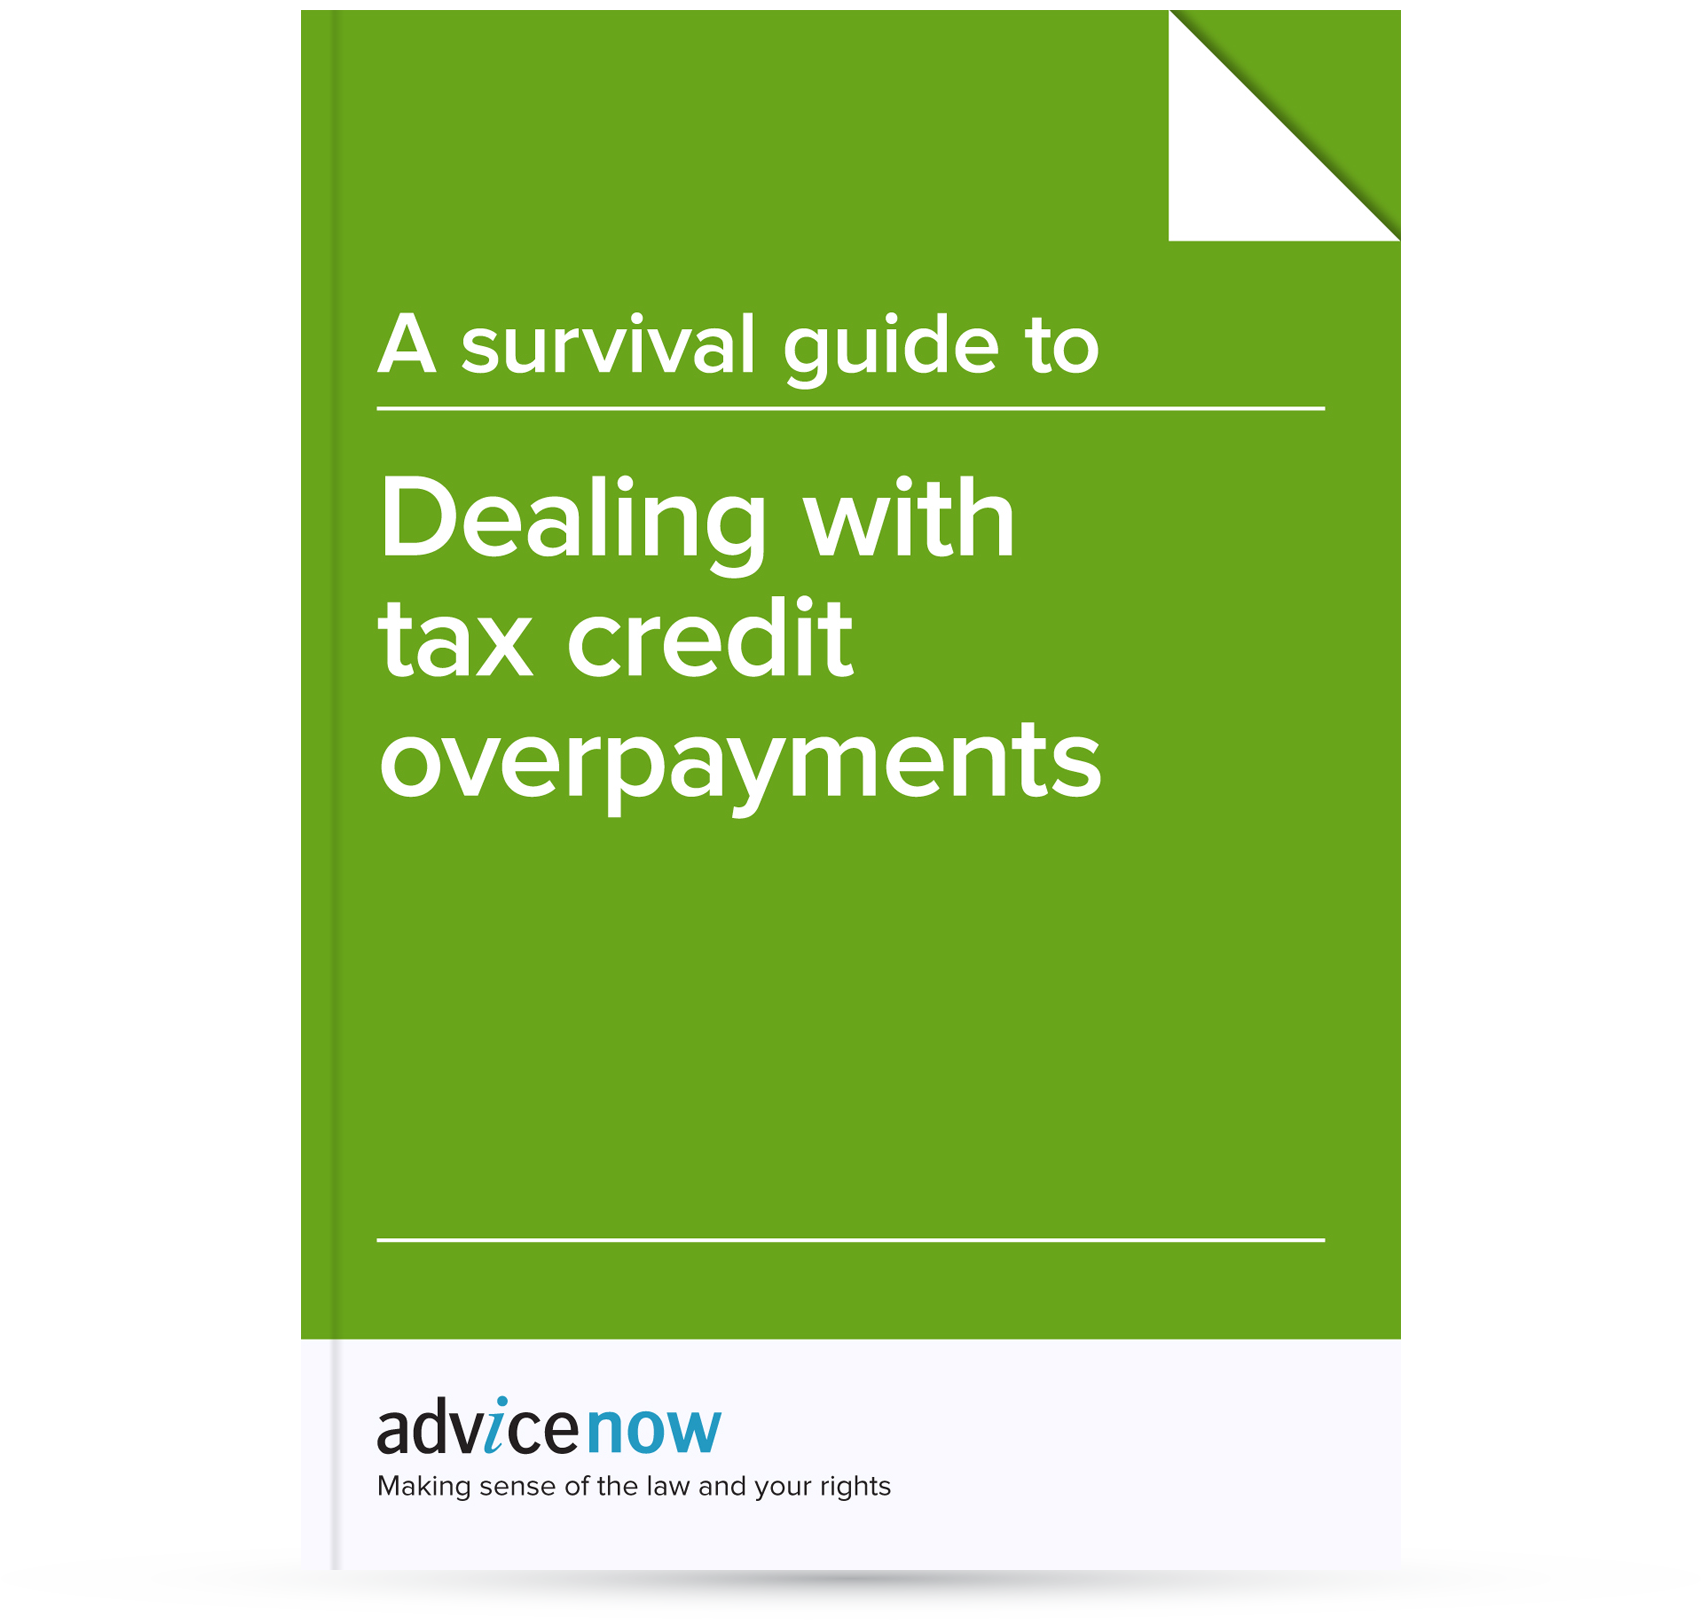 A survival guide to dealing with tax credit overpayments advicenow spiritdancerdesigns Images